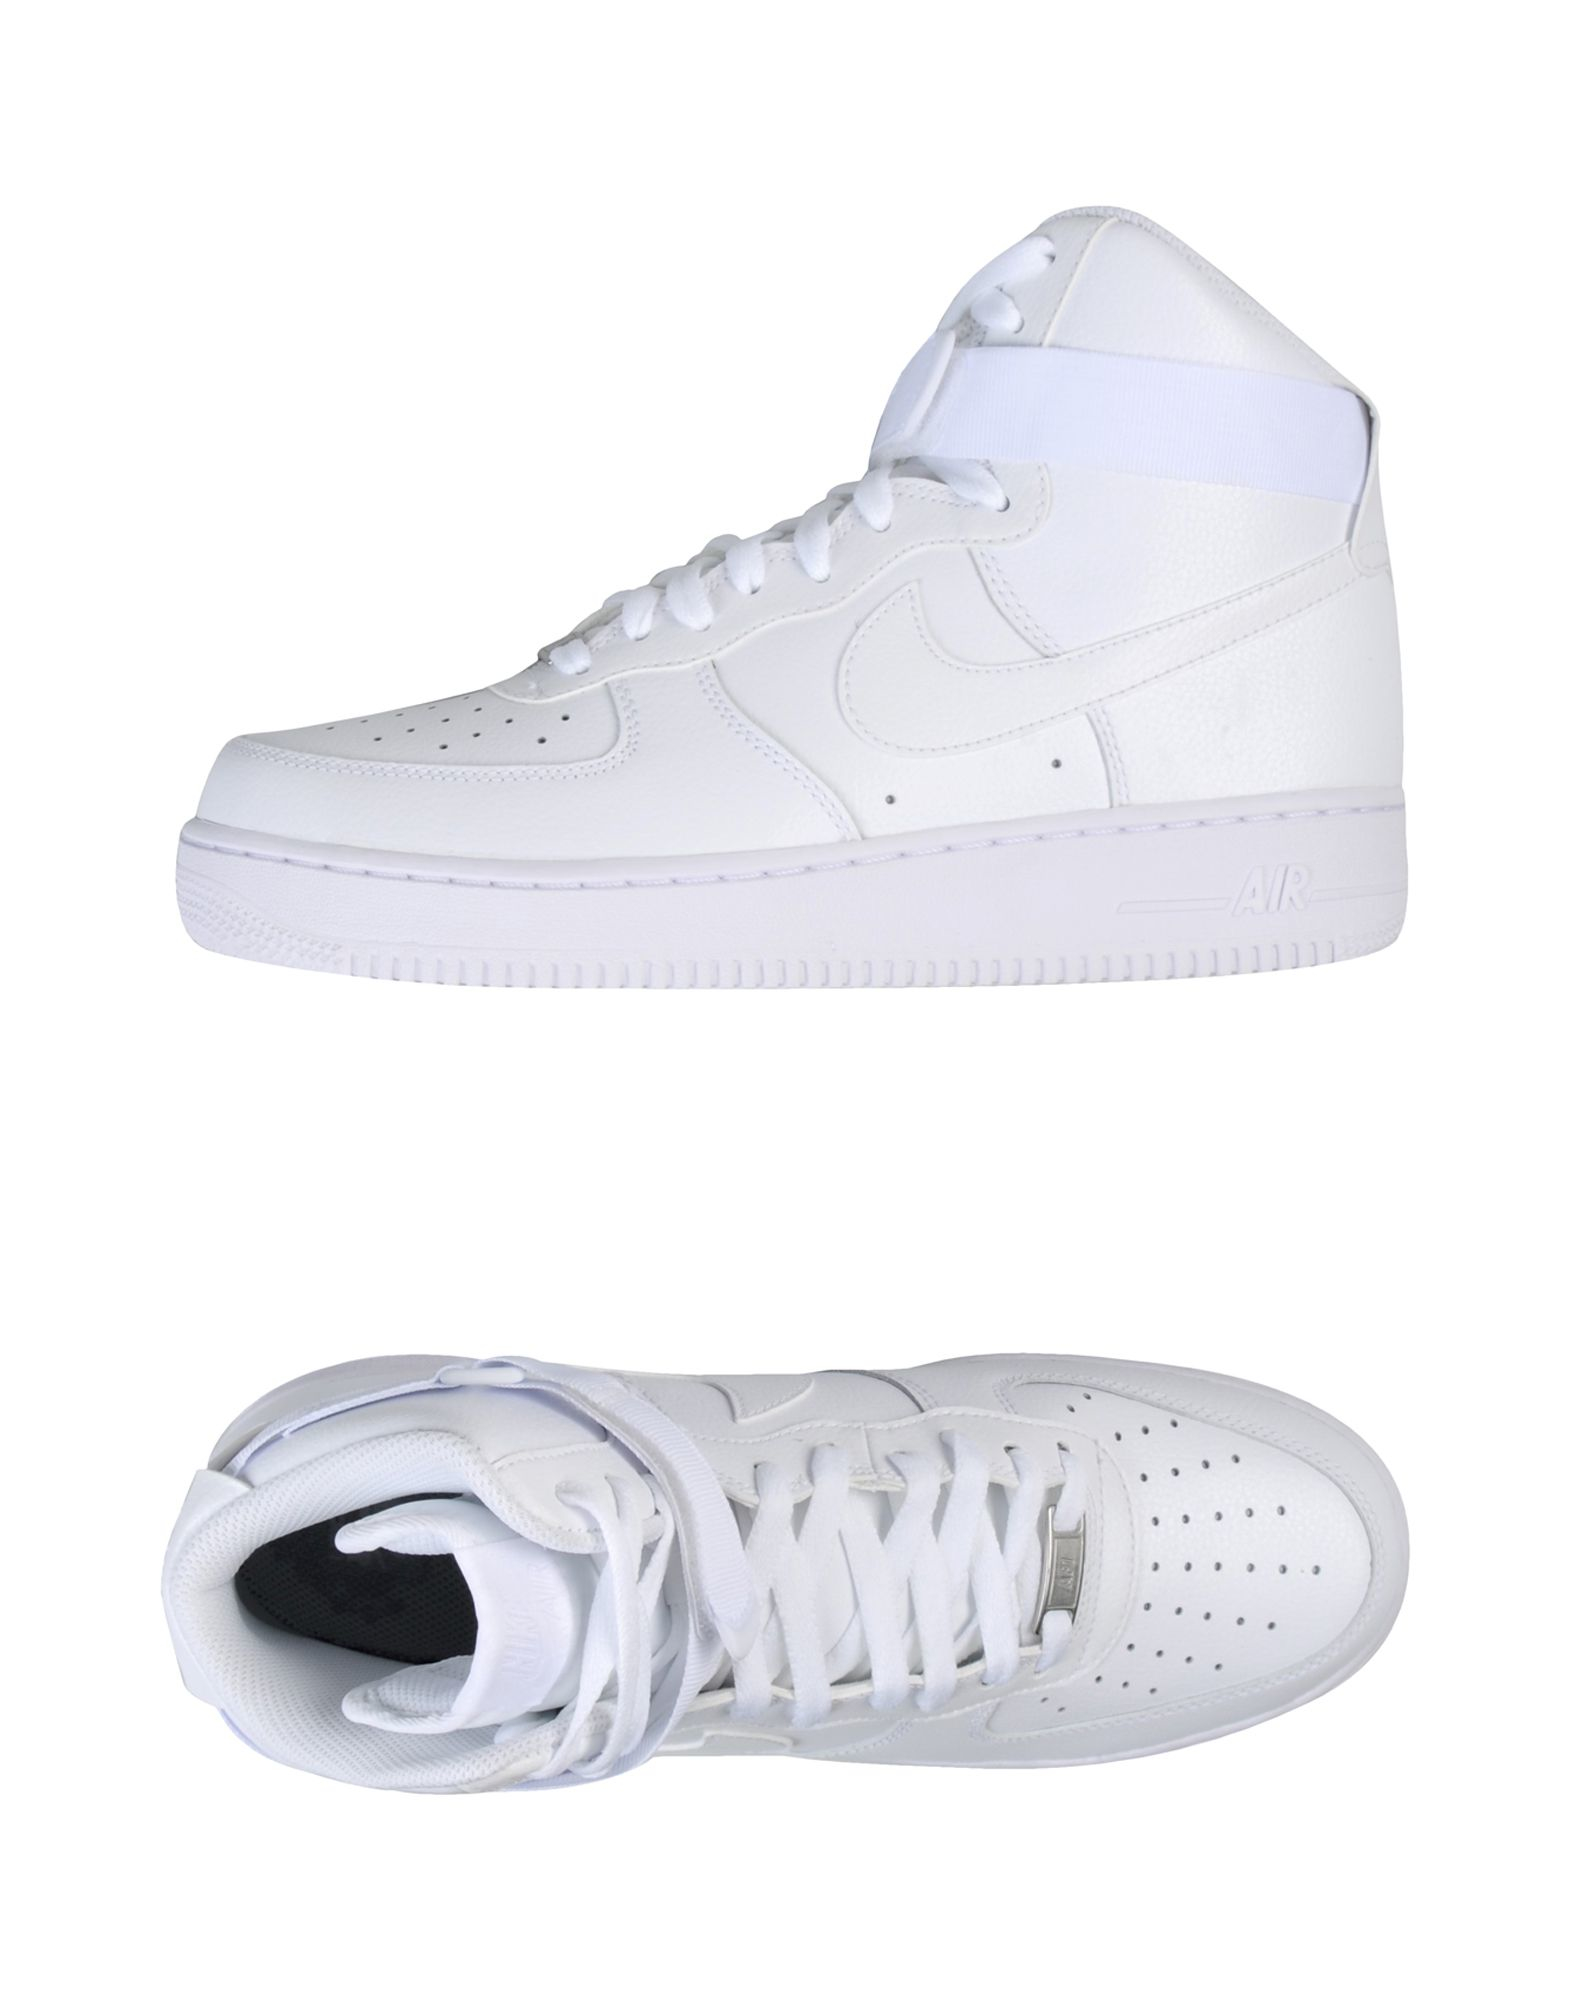 Find great deals on eBay for nike high tops. Shop with confidence. Skip to main content. eBay: Nike Tanjun Hi GS High Top Black White Kids Women Sneakerboots Shoes Brand new · Nike. AU $ Nike High Top Athletic Shoes for Men.